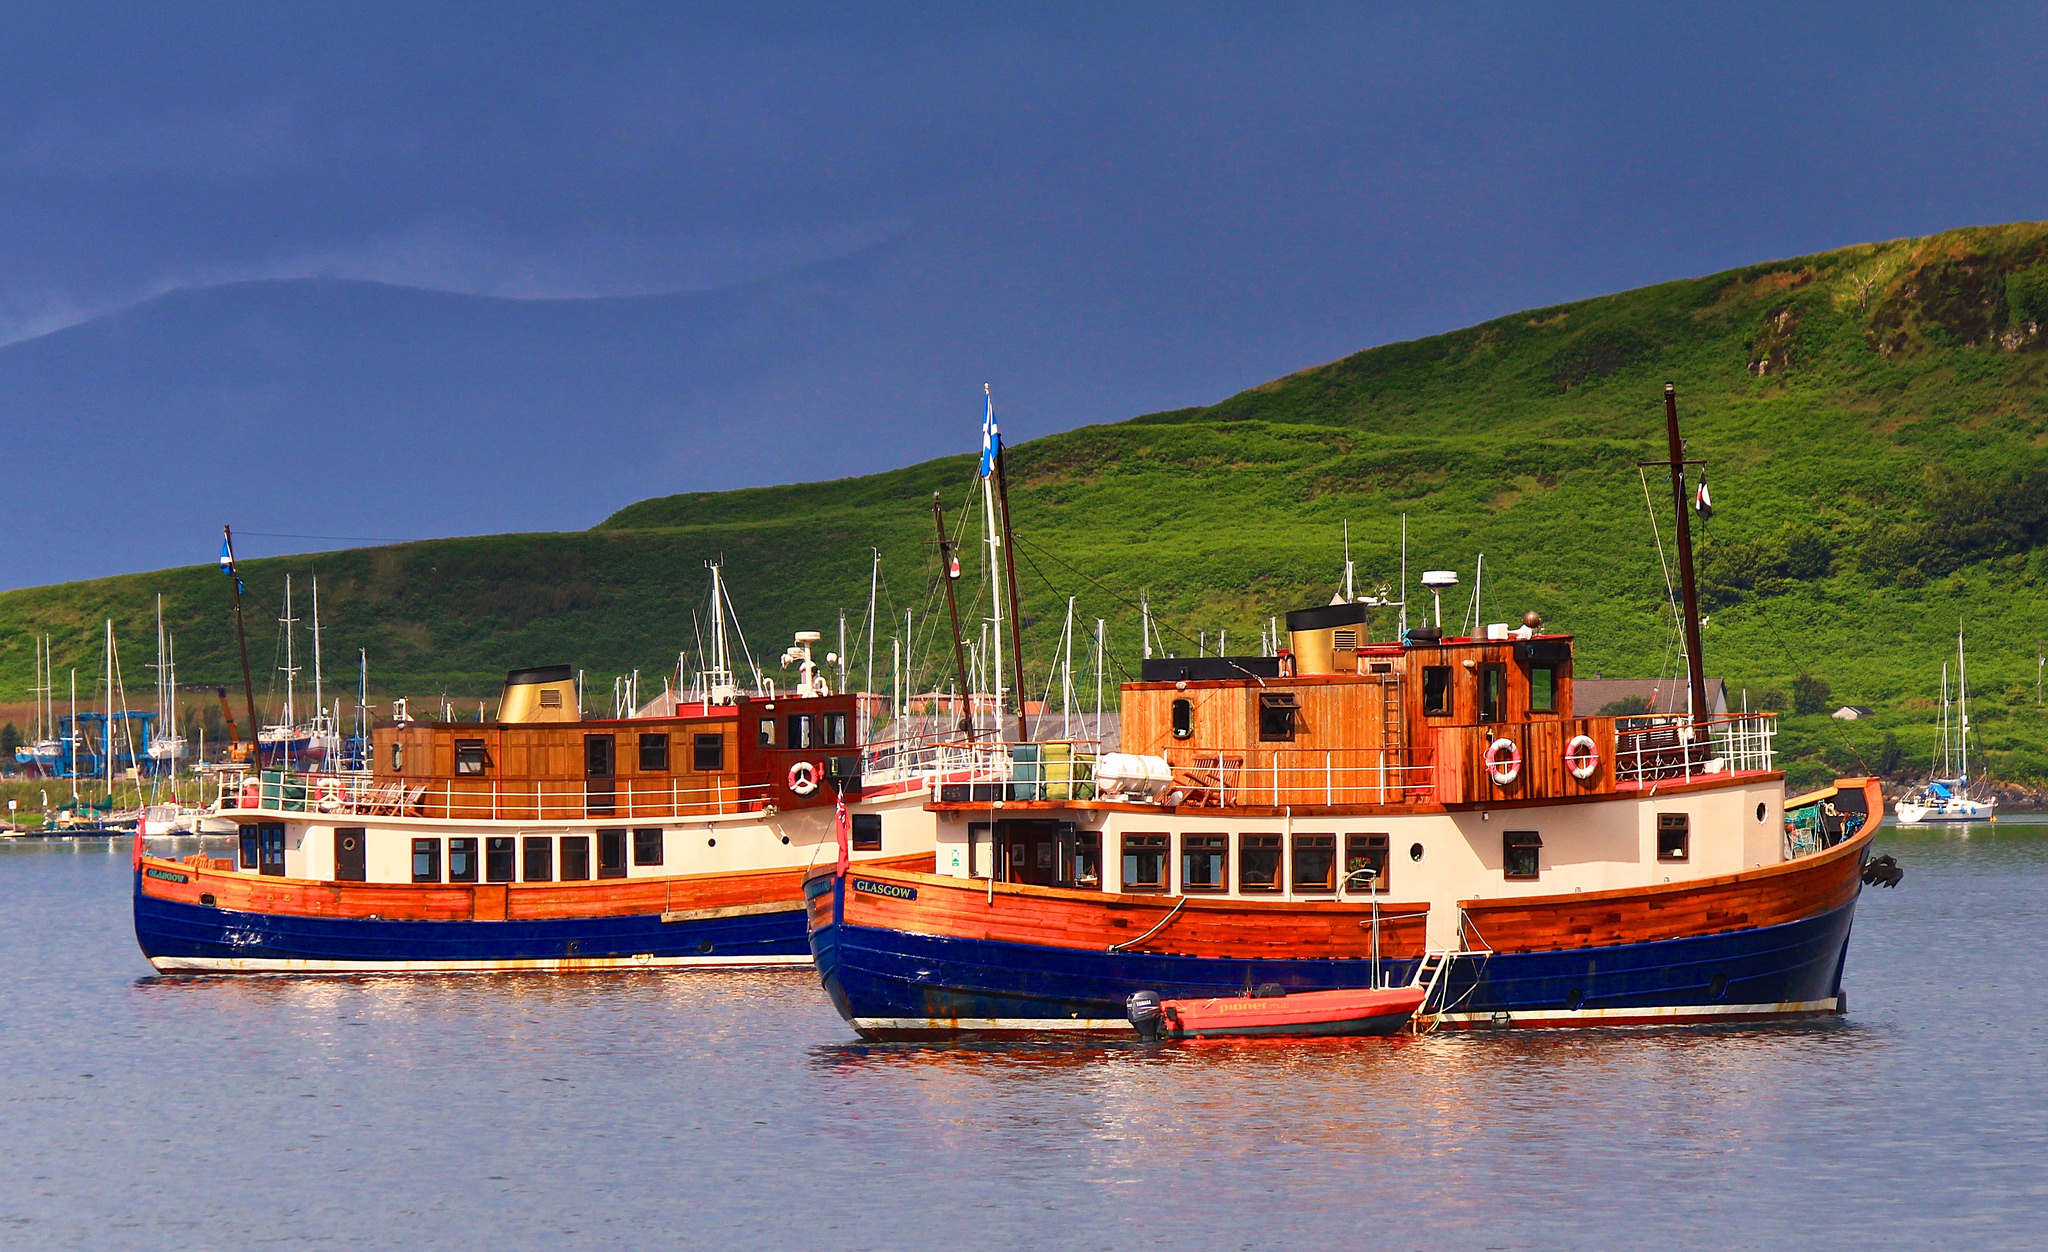 Scotland Fishing Industry Encouraged To Apply For £600,000 Flag Fund